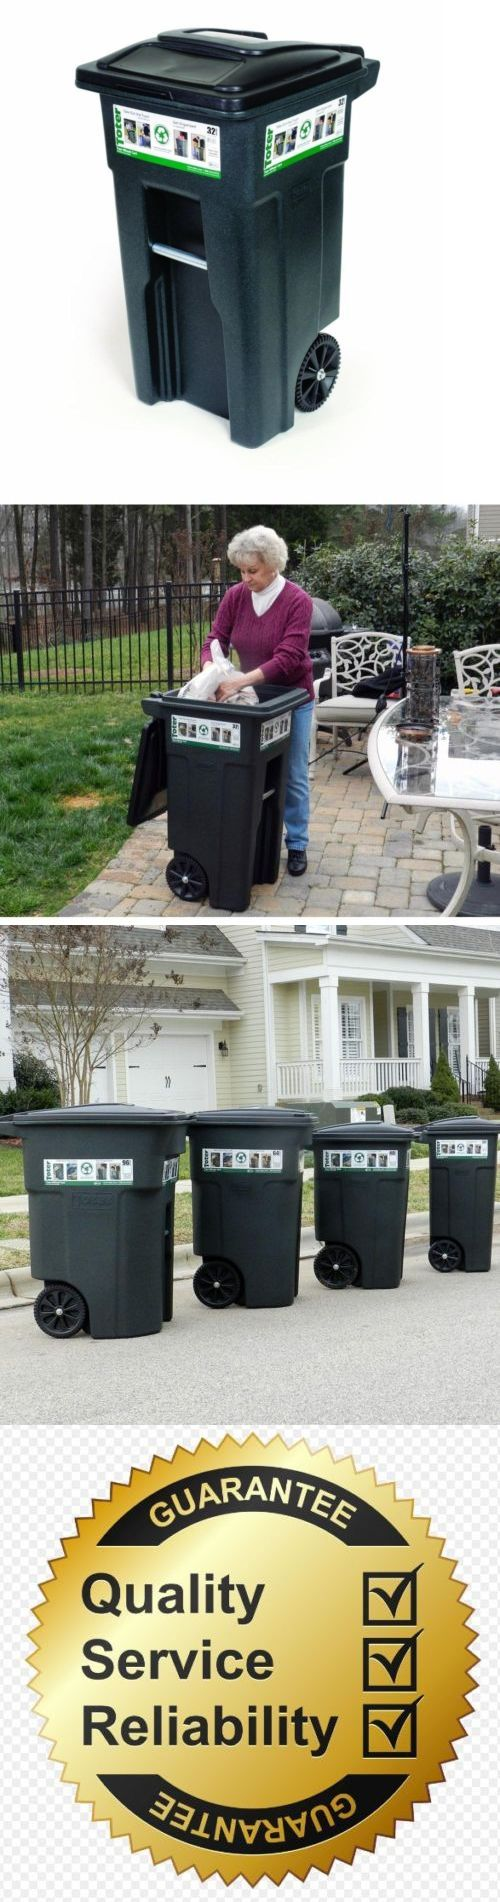 Trash Cans and Wastebaskets 20608: Outdoor Garbage Can Trash Bin 32 Gallon Wheeled Heavy Duty Waste Container Lid -> BUY IT NOW ONLY: $68.99 on eBay!